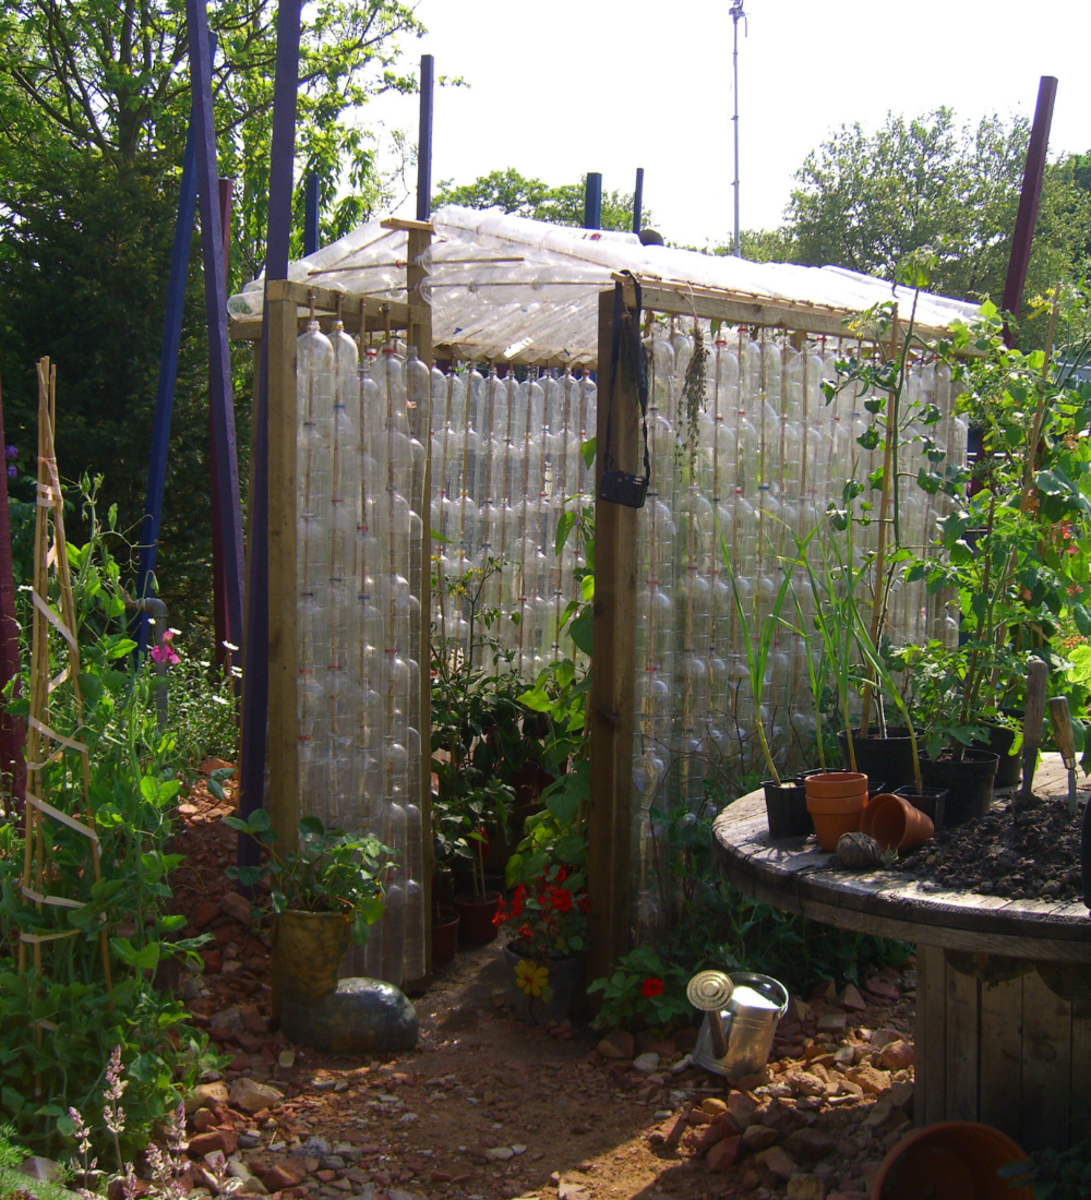 How to Build a Greenhouse Using Plastic Bottles